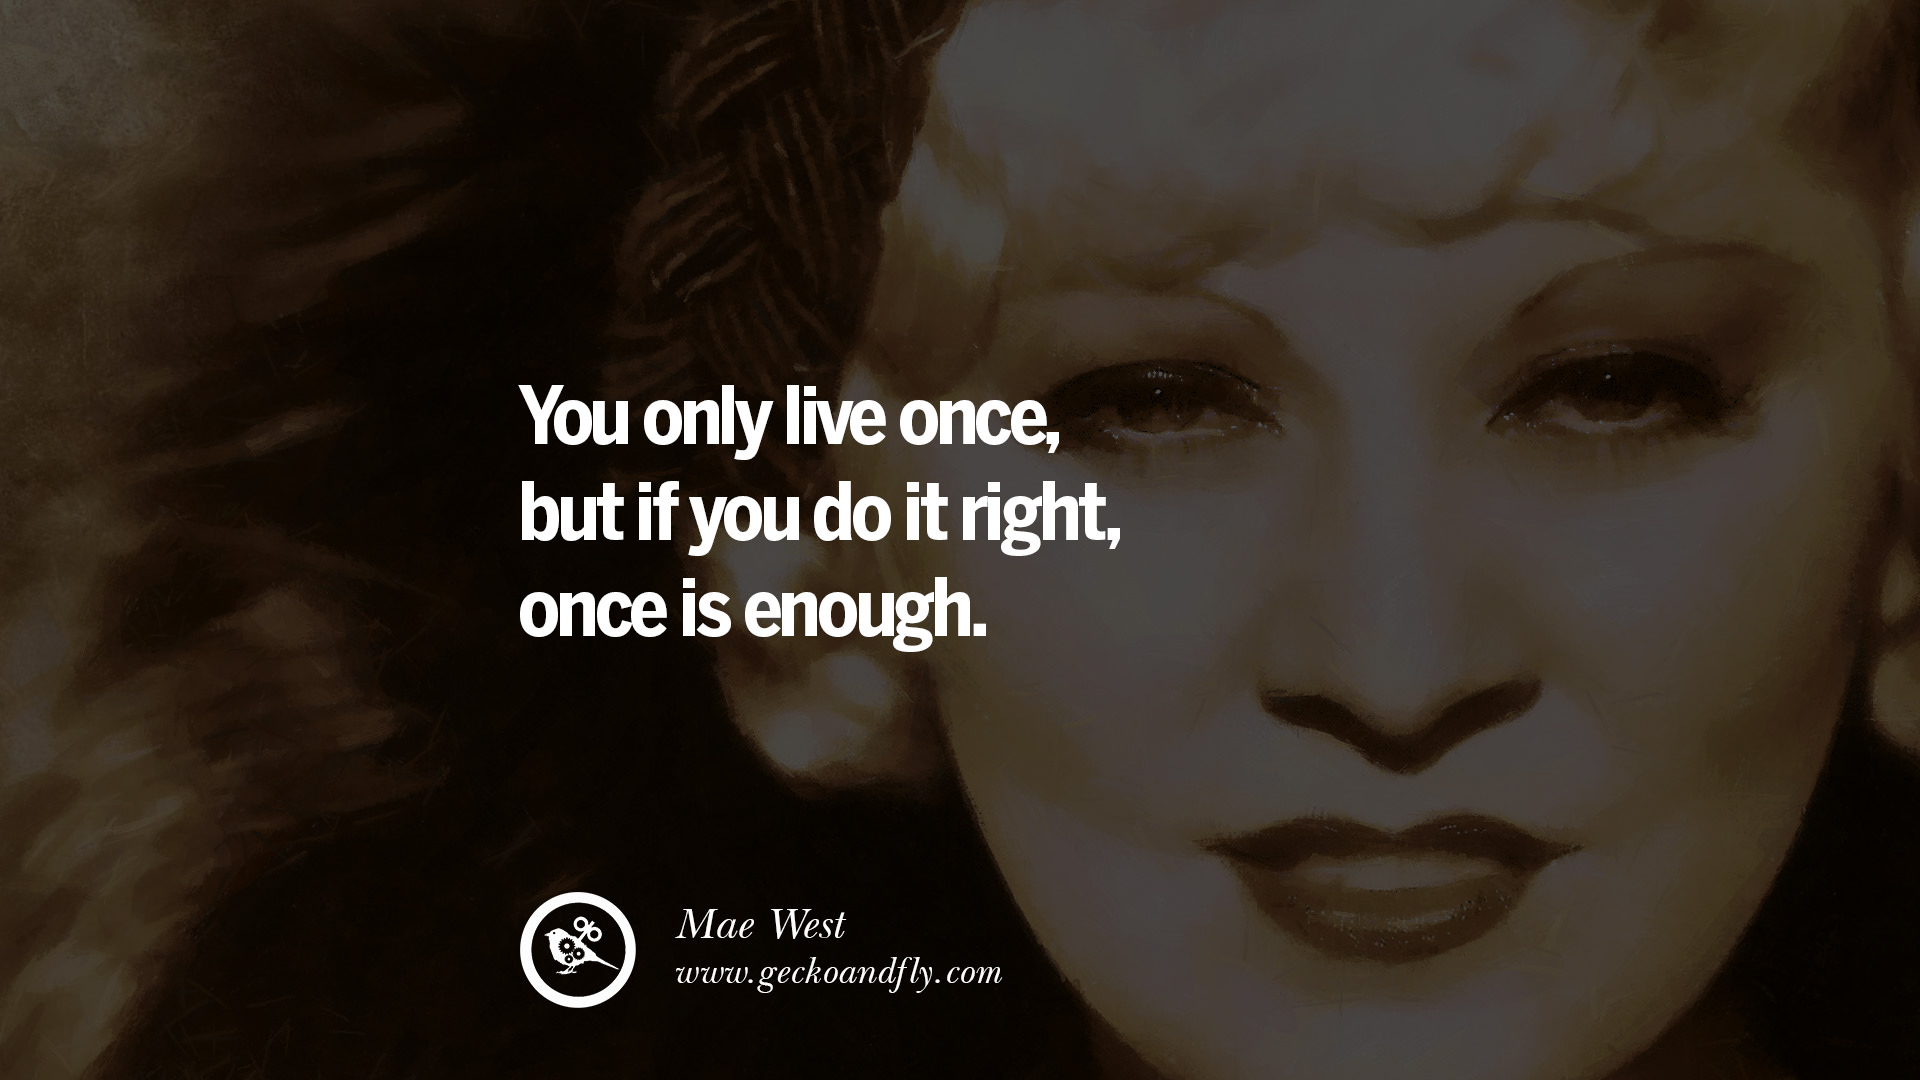 Women's Rights Quotes 10 Quotessuccessful Women In Celebration With The Second Wave